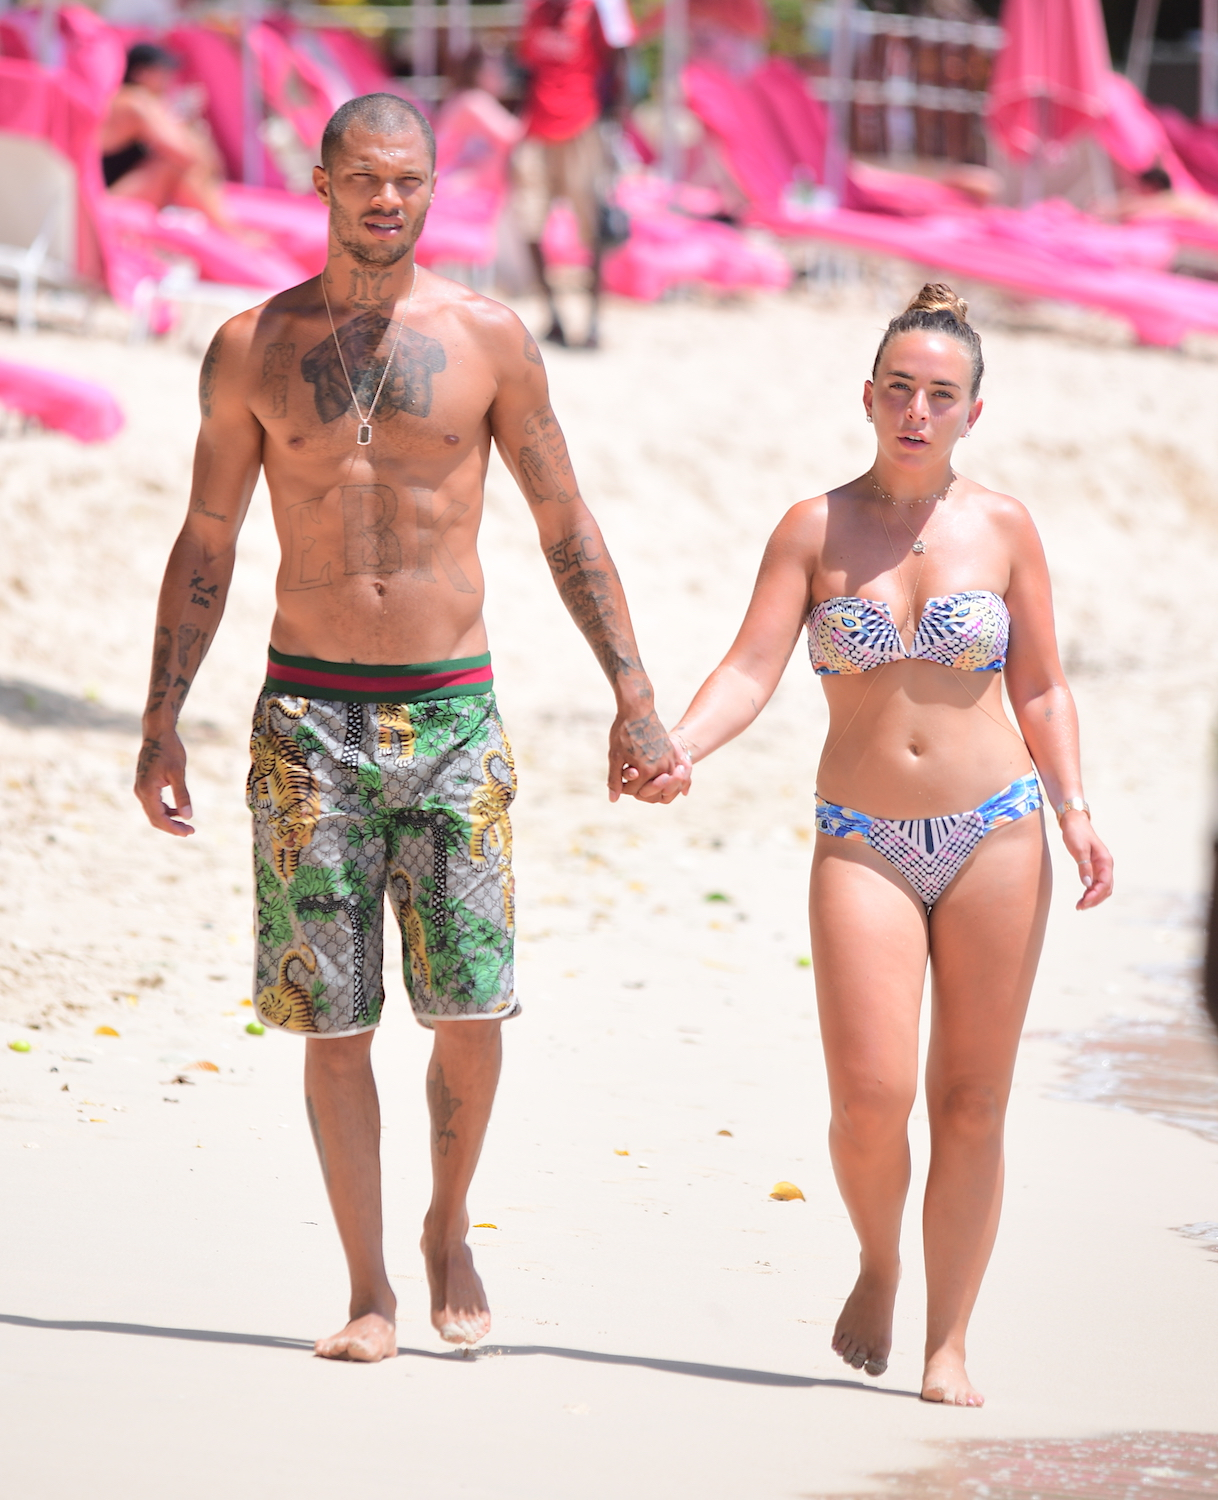 Hot Felon Jeremy Meeks and Topshop Heiress Chloe Green were spotted enjoying another day on the beach in Barbados. They held hands walking on the beach as they walked over to get on Jet skis. <P> Pictured: Jeremy Meeks, Chloe Green <B>Ref: SPL1550930  050817  </B><BR/> Picture by: 247PAPS.TV / Splash News<BR/> </P><P> <B>Splash News and Pictures</B><BR/> Los Angeles:	310-821-2666<BR/> New York:	212-619-2666<BR/> London:	870-934-2666<BR/> <span id=